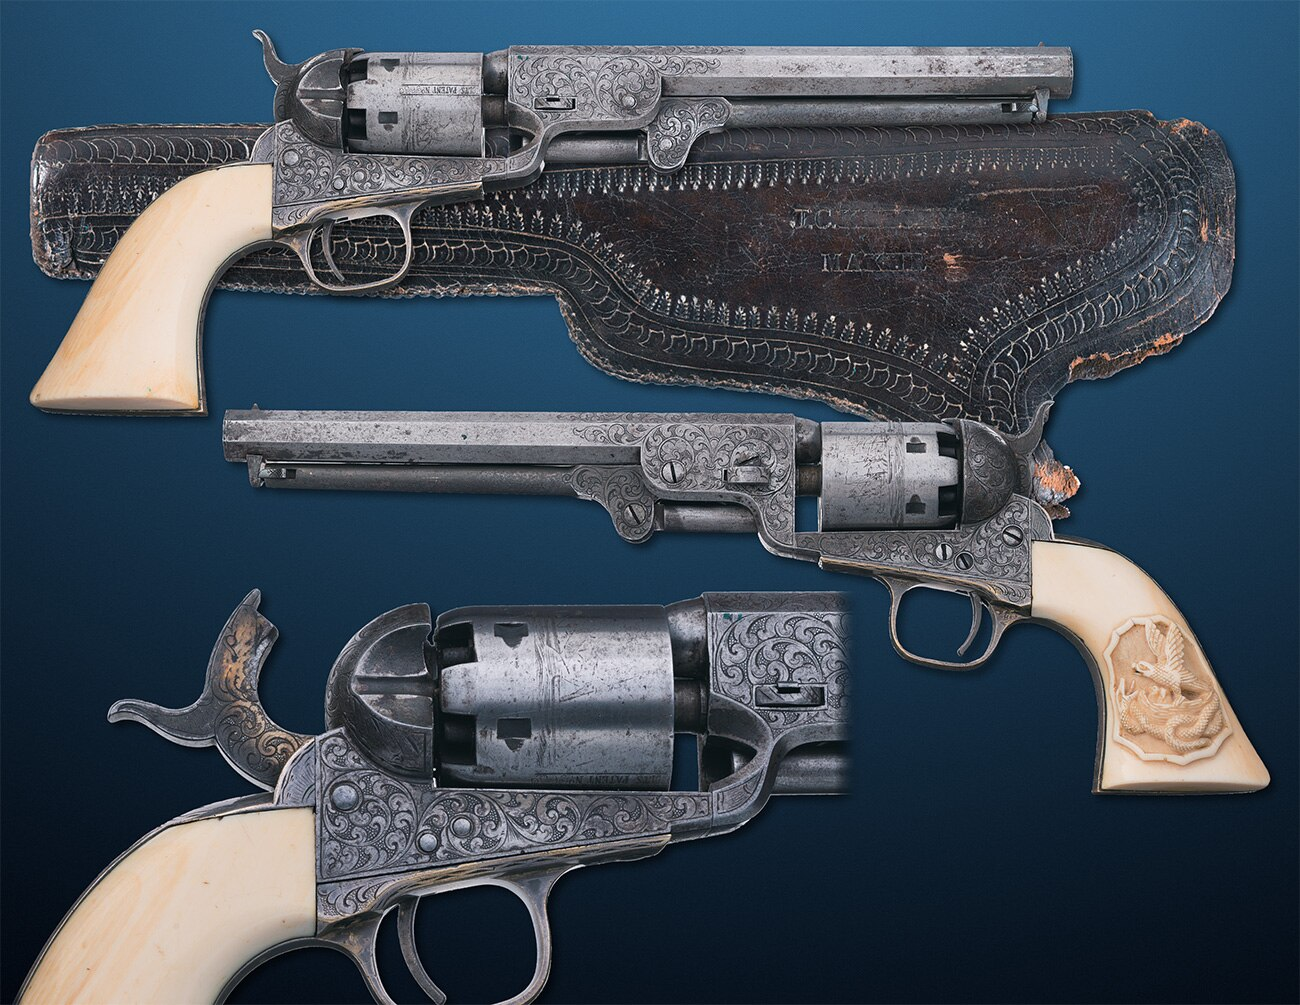 This fourth variation Model 1851 Navy revolver includes a California-style holster and features engraving likely do be done by the famed Gustave Young.